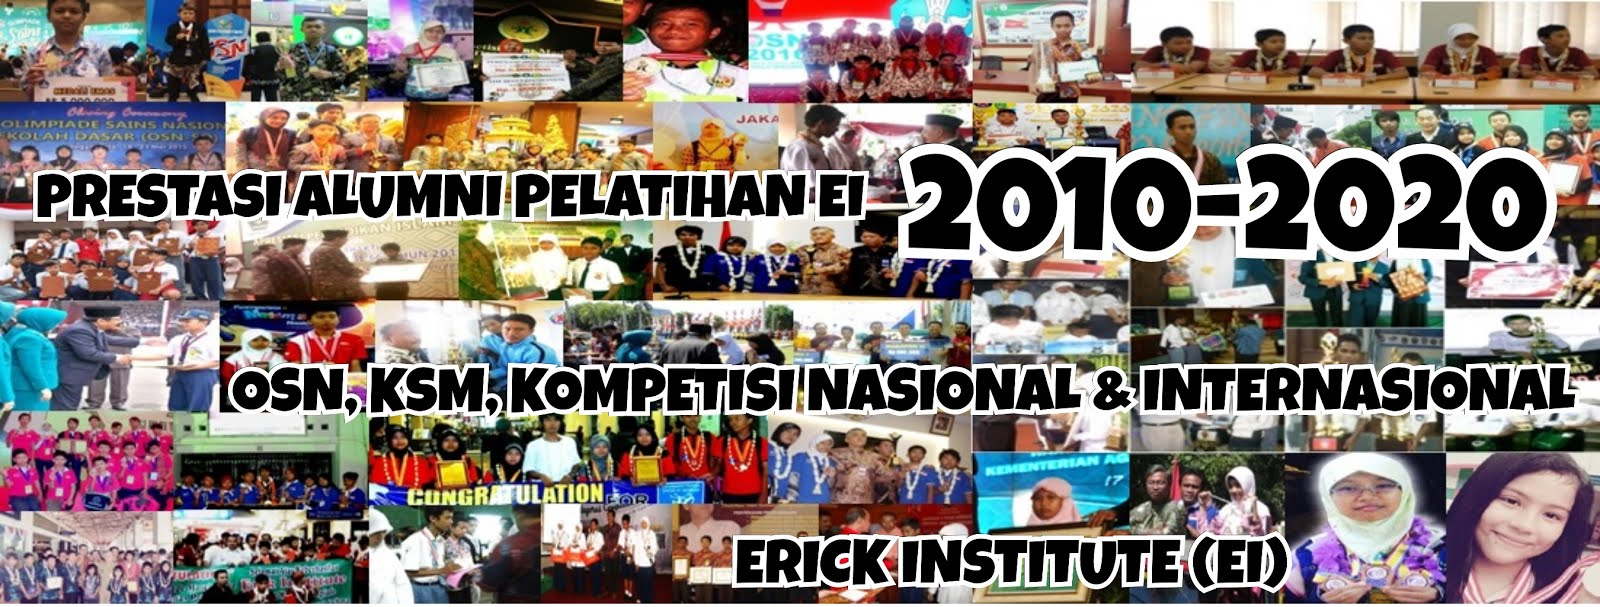 ERICK INSTITUTE, INDONESIA